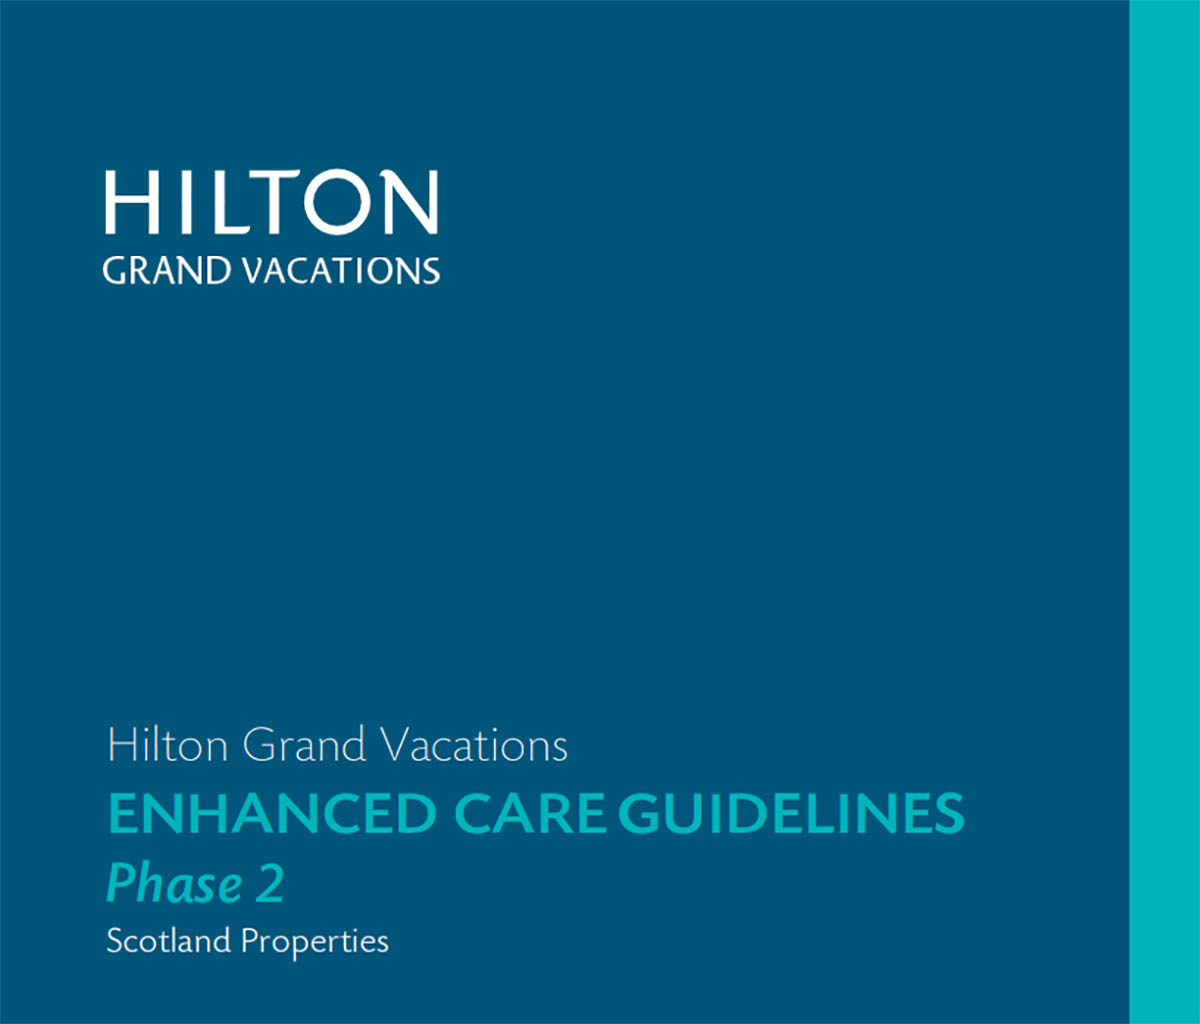 HGV Enhanced Care Guidelines Phase 2